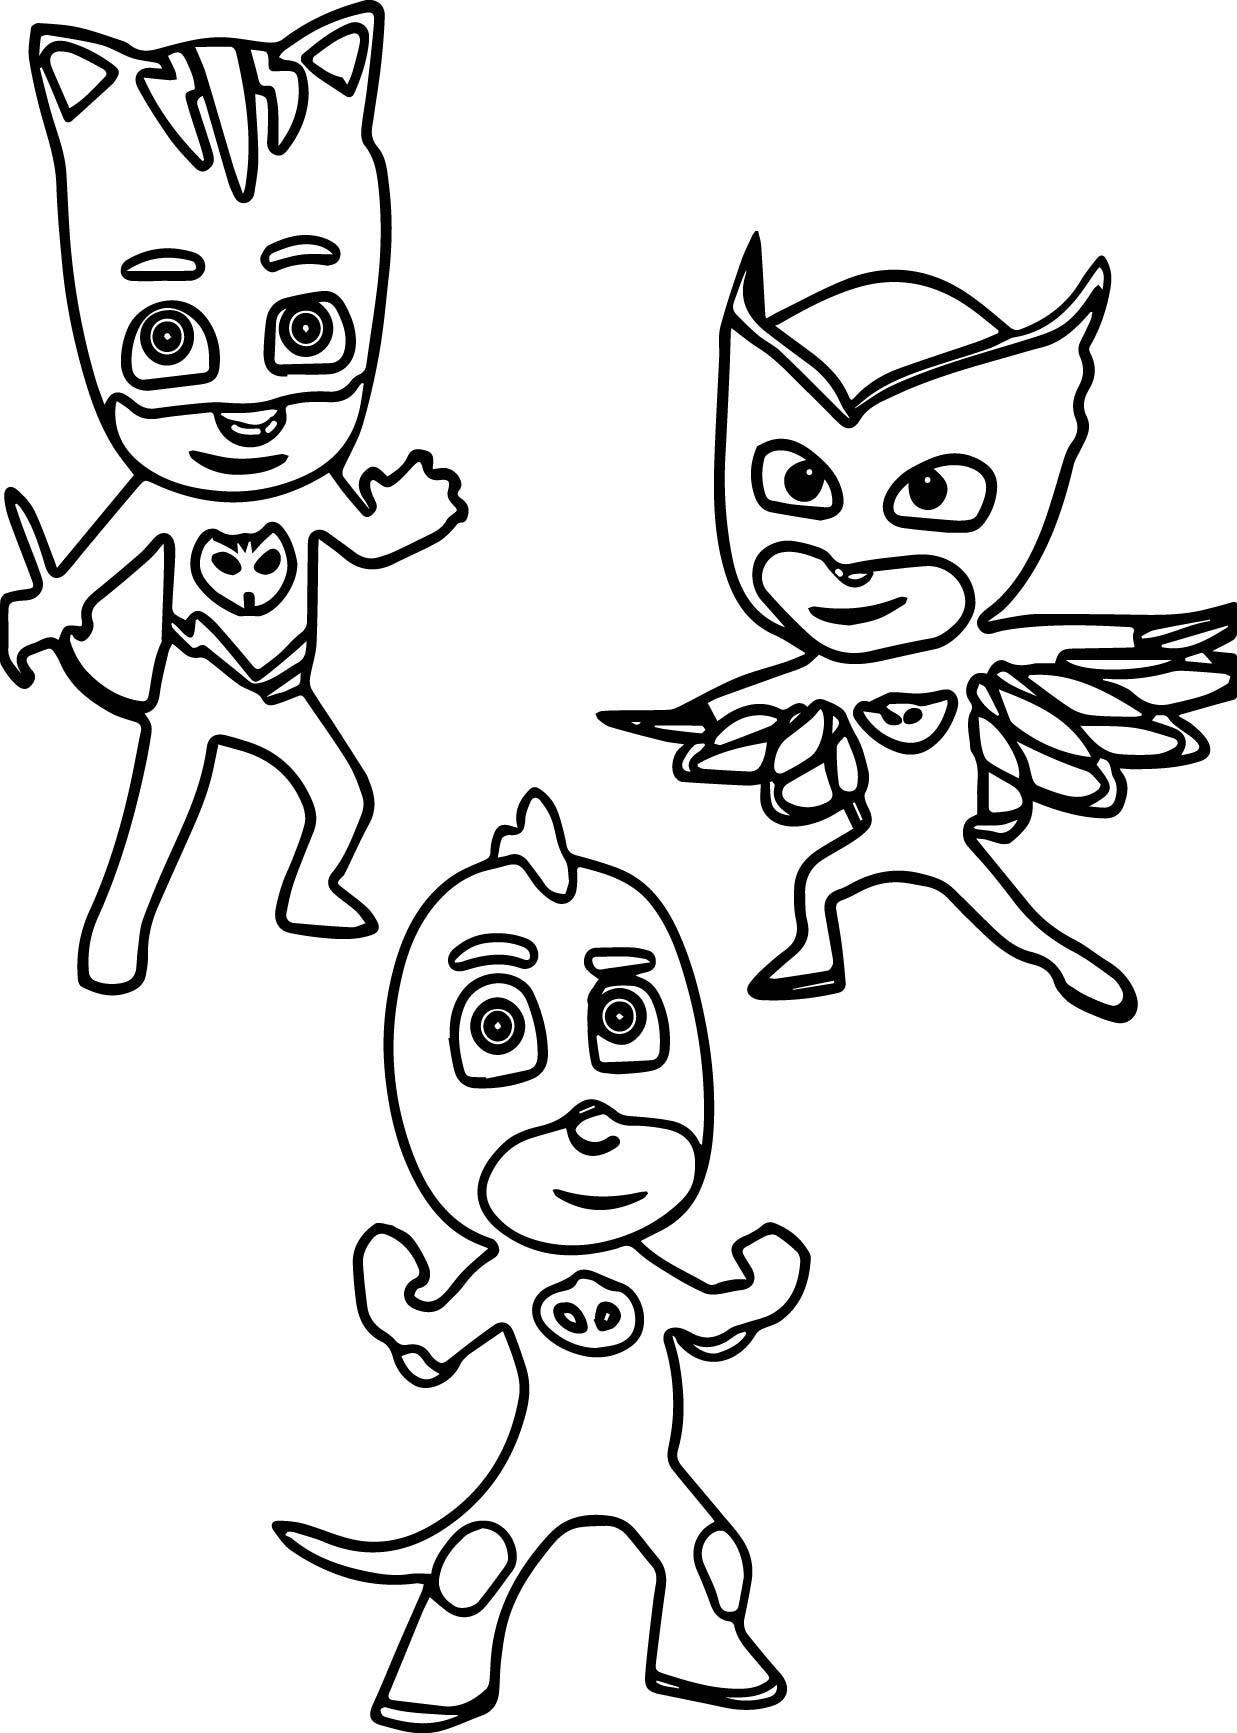 pj-masks-gecko-coloring-pages-copy-pj-masks-coloring-pages-to-and-print-for-free-best-pj-masks-gecko-coloring-pages-fresh-colour-in-gekko-from-pj-masks-of-pj-masks-gecko-coloring-pages-copy-pj-masks-c